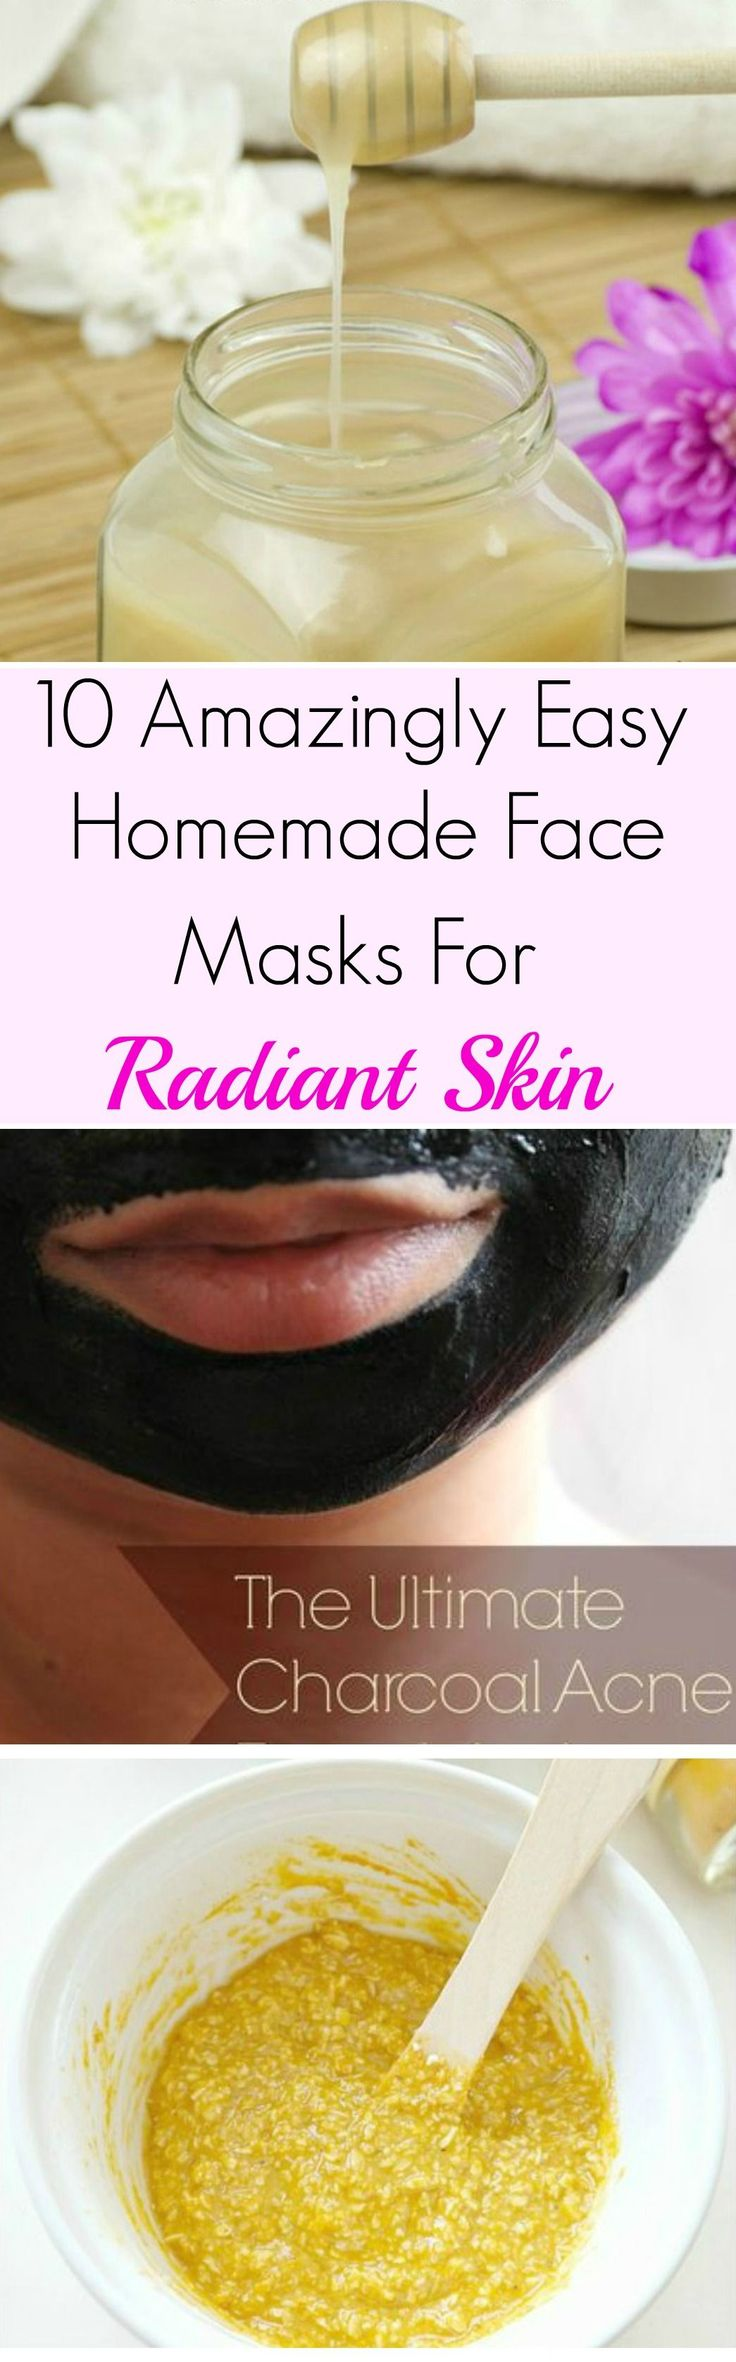 10 Amazingly Easy Homemade Face Masks For Radiant Skin. Wonderful list of DIY face masks. These are extremely simple to make to make and are great for your skin. Honey, turmeric, charcoal, coconut oil, and cinnamon are among the wonderful ingredients in these masks